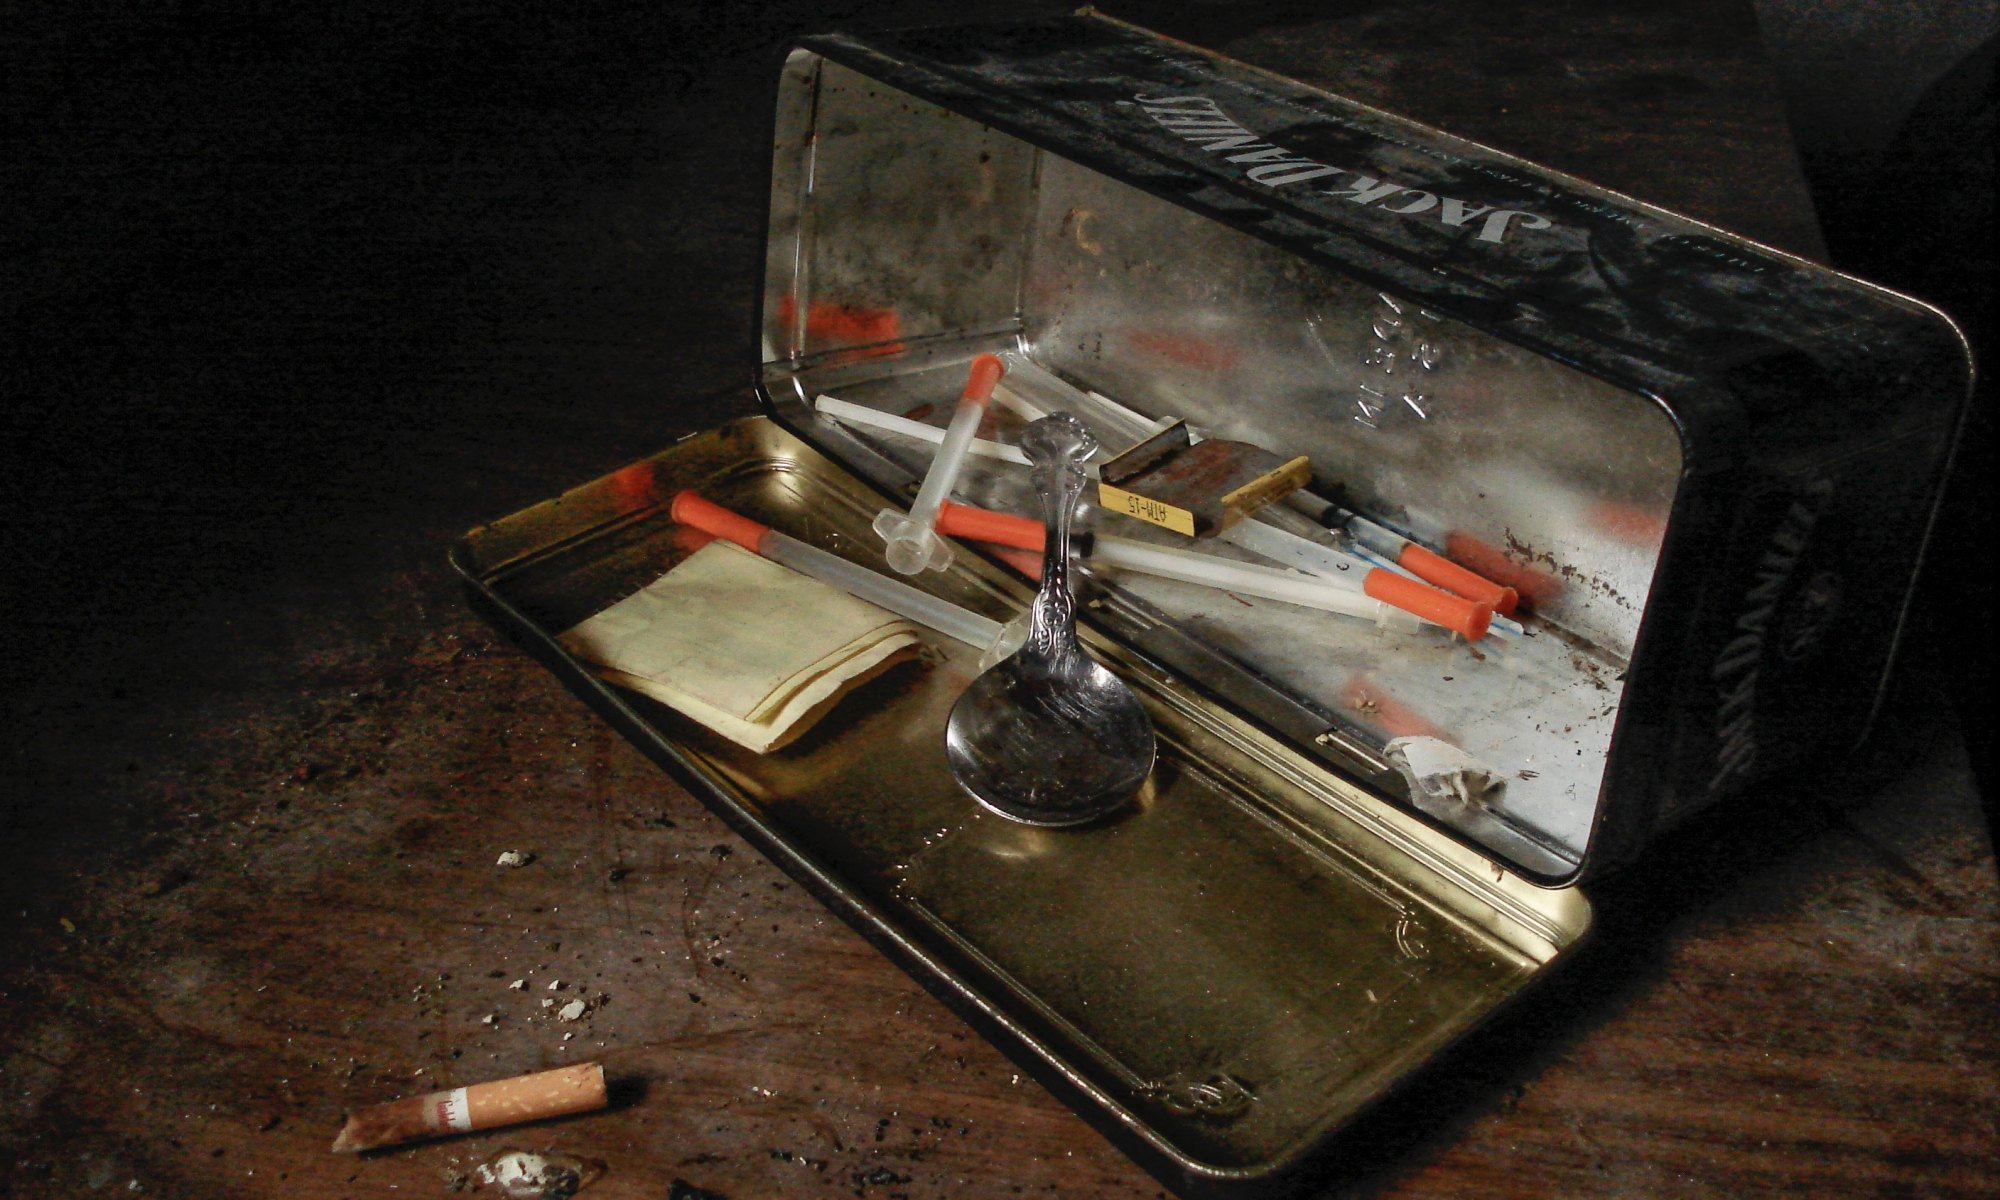 An open container with needles, drugs, spoons and cigarettes